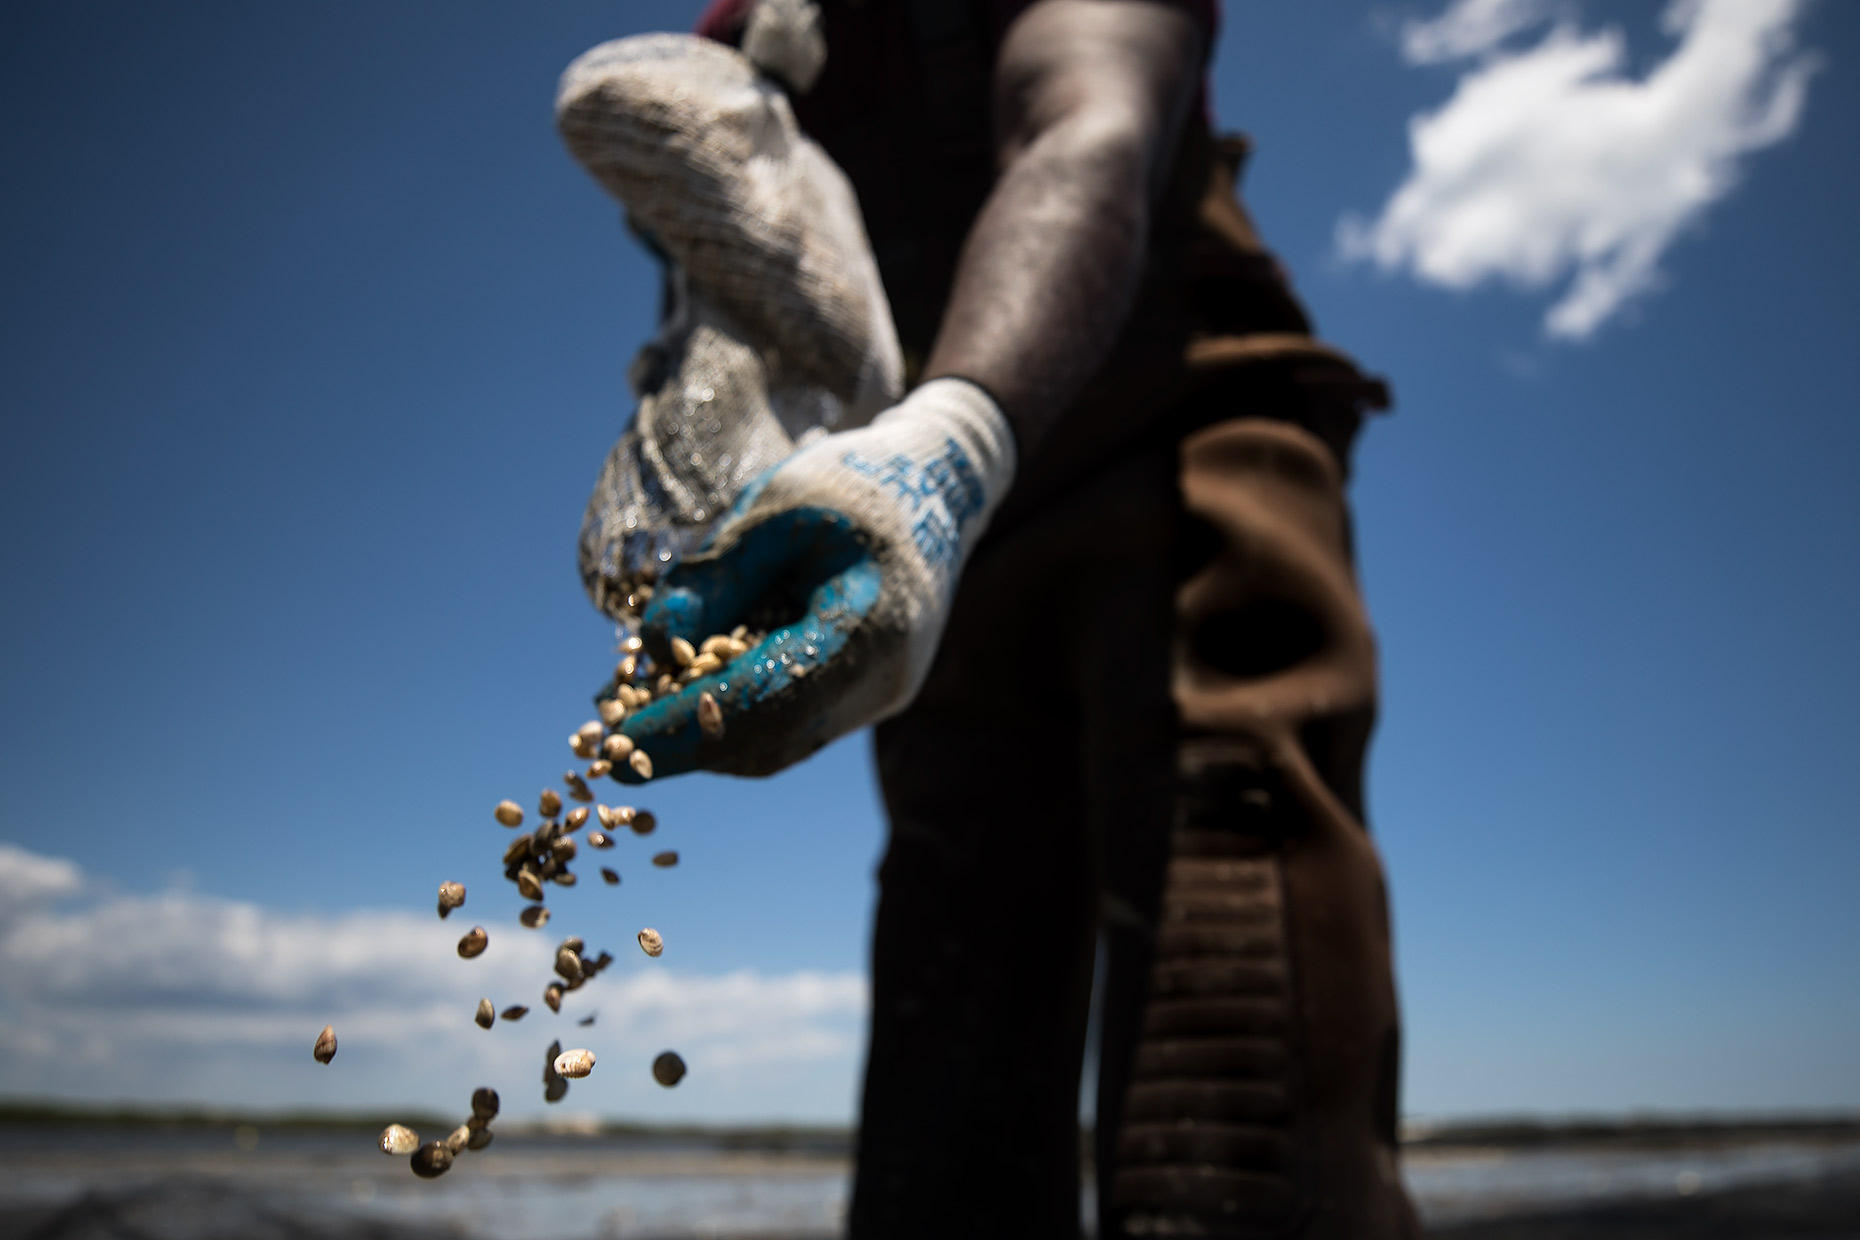 A farmer throws oyster seed on a growing bed | Scott Gable industrial photographer